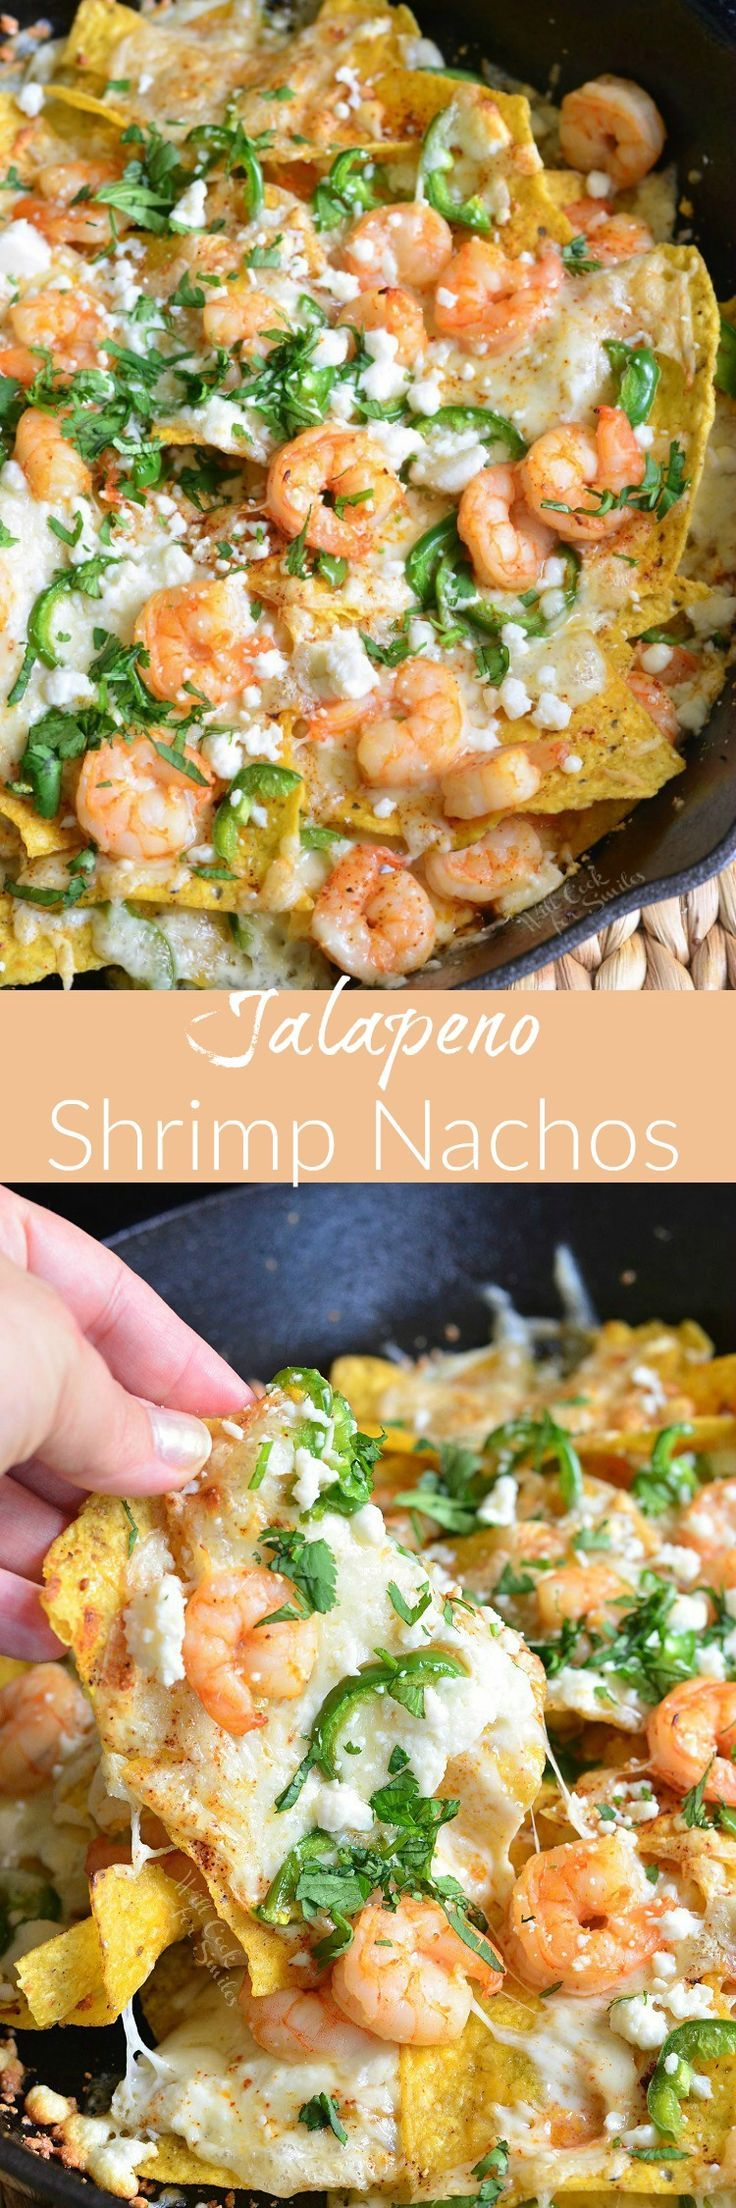 Jalapeno Shrimp Nachos. These cheesy, spicy, delicious shrimp nachos will make a great snack for everyone. These nachos are loaded with two types of cheese, fresh jalapeno peppers, and juicy shrimp. (Jalapeno Cheese Bites)